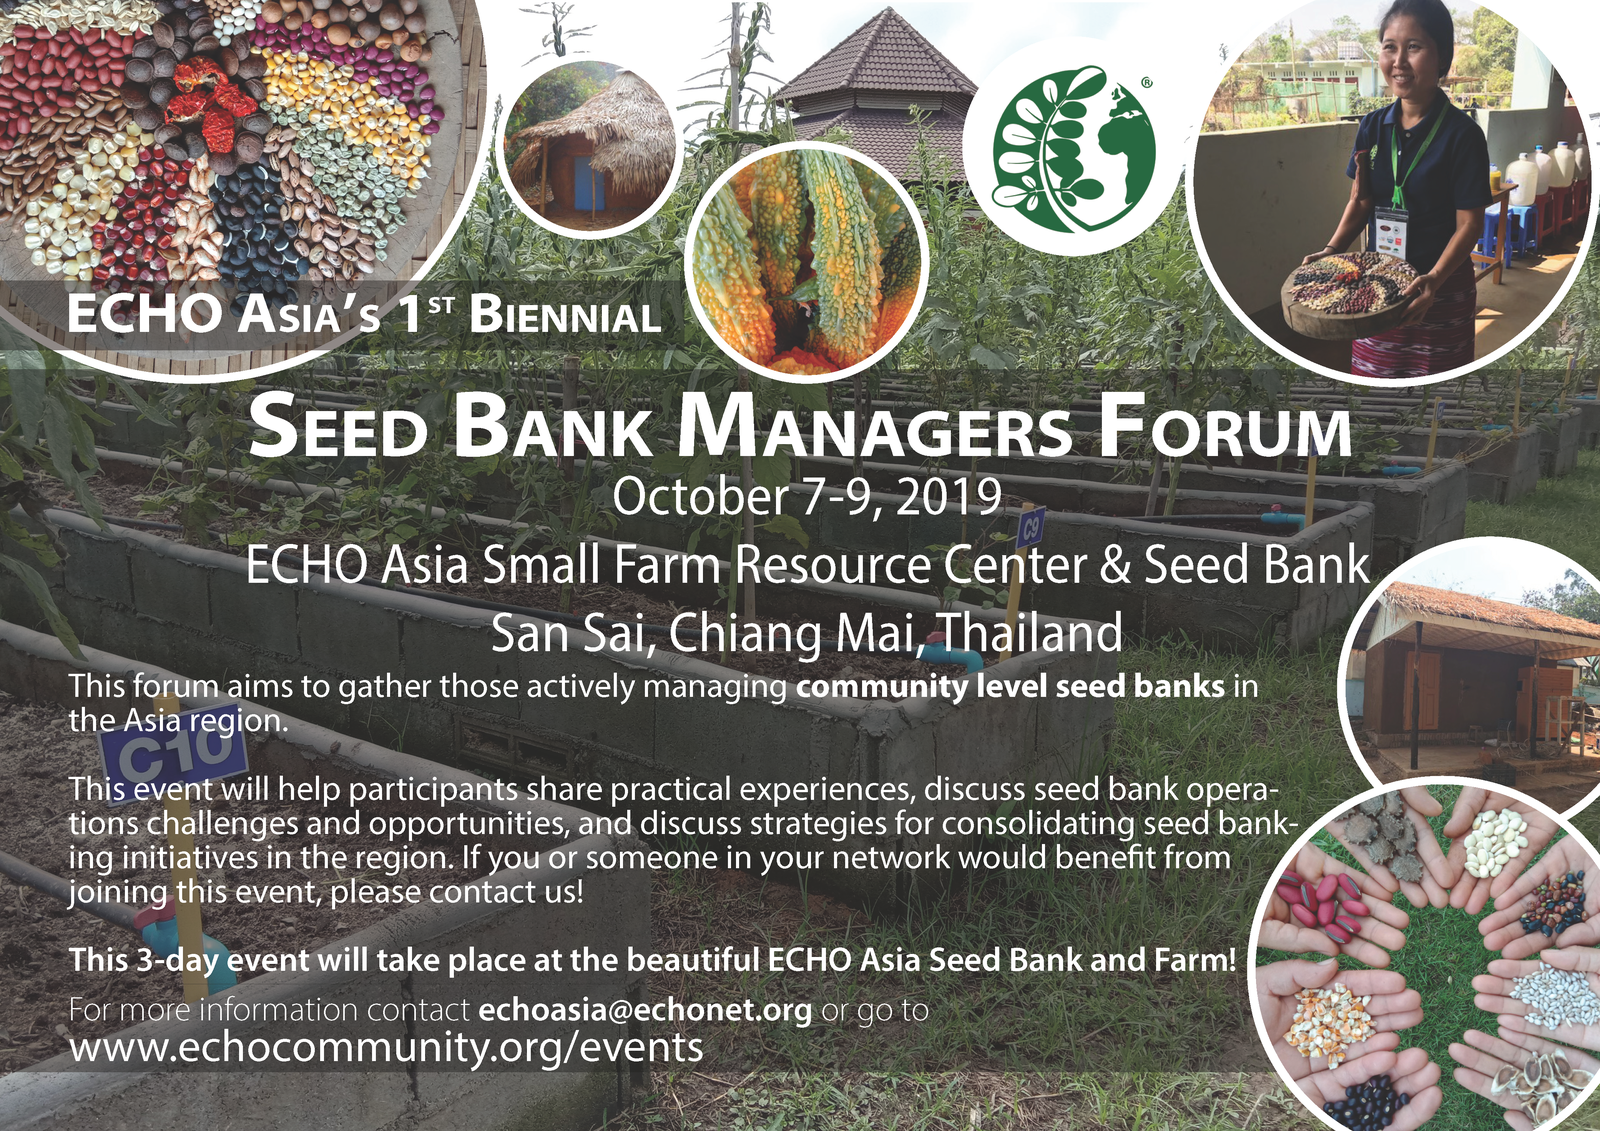 2019 Seed Bank Managers Forum flyer